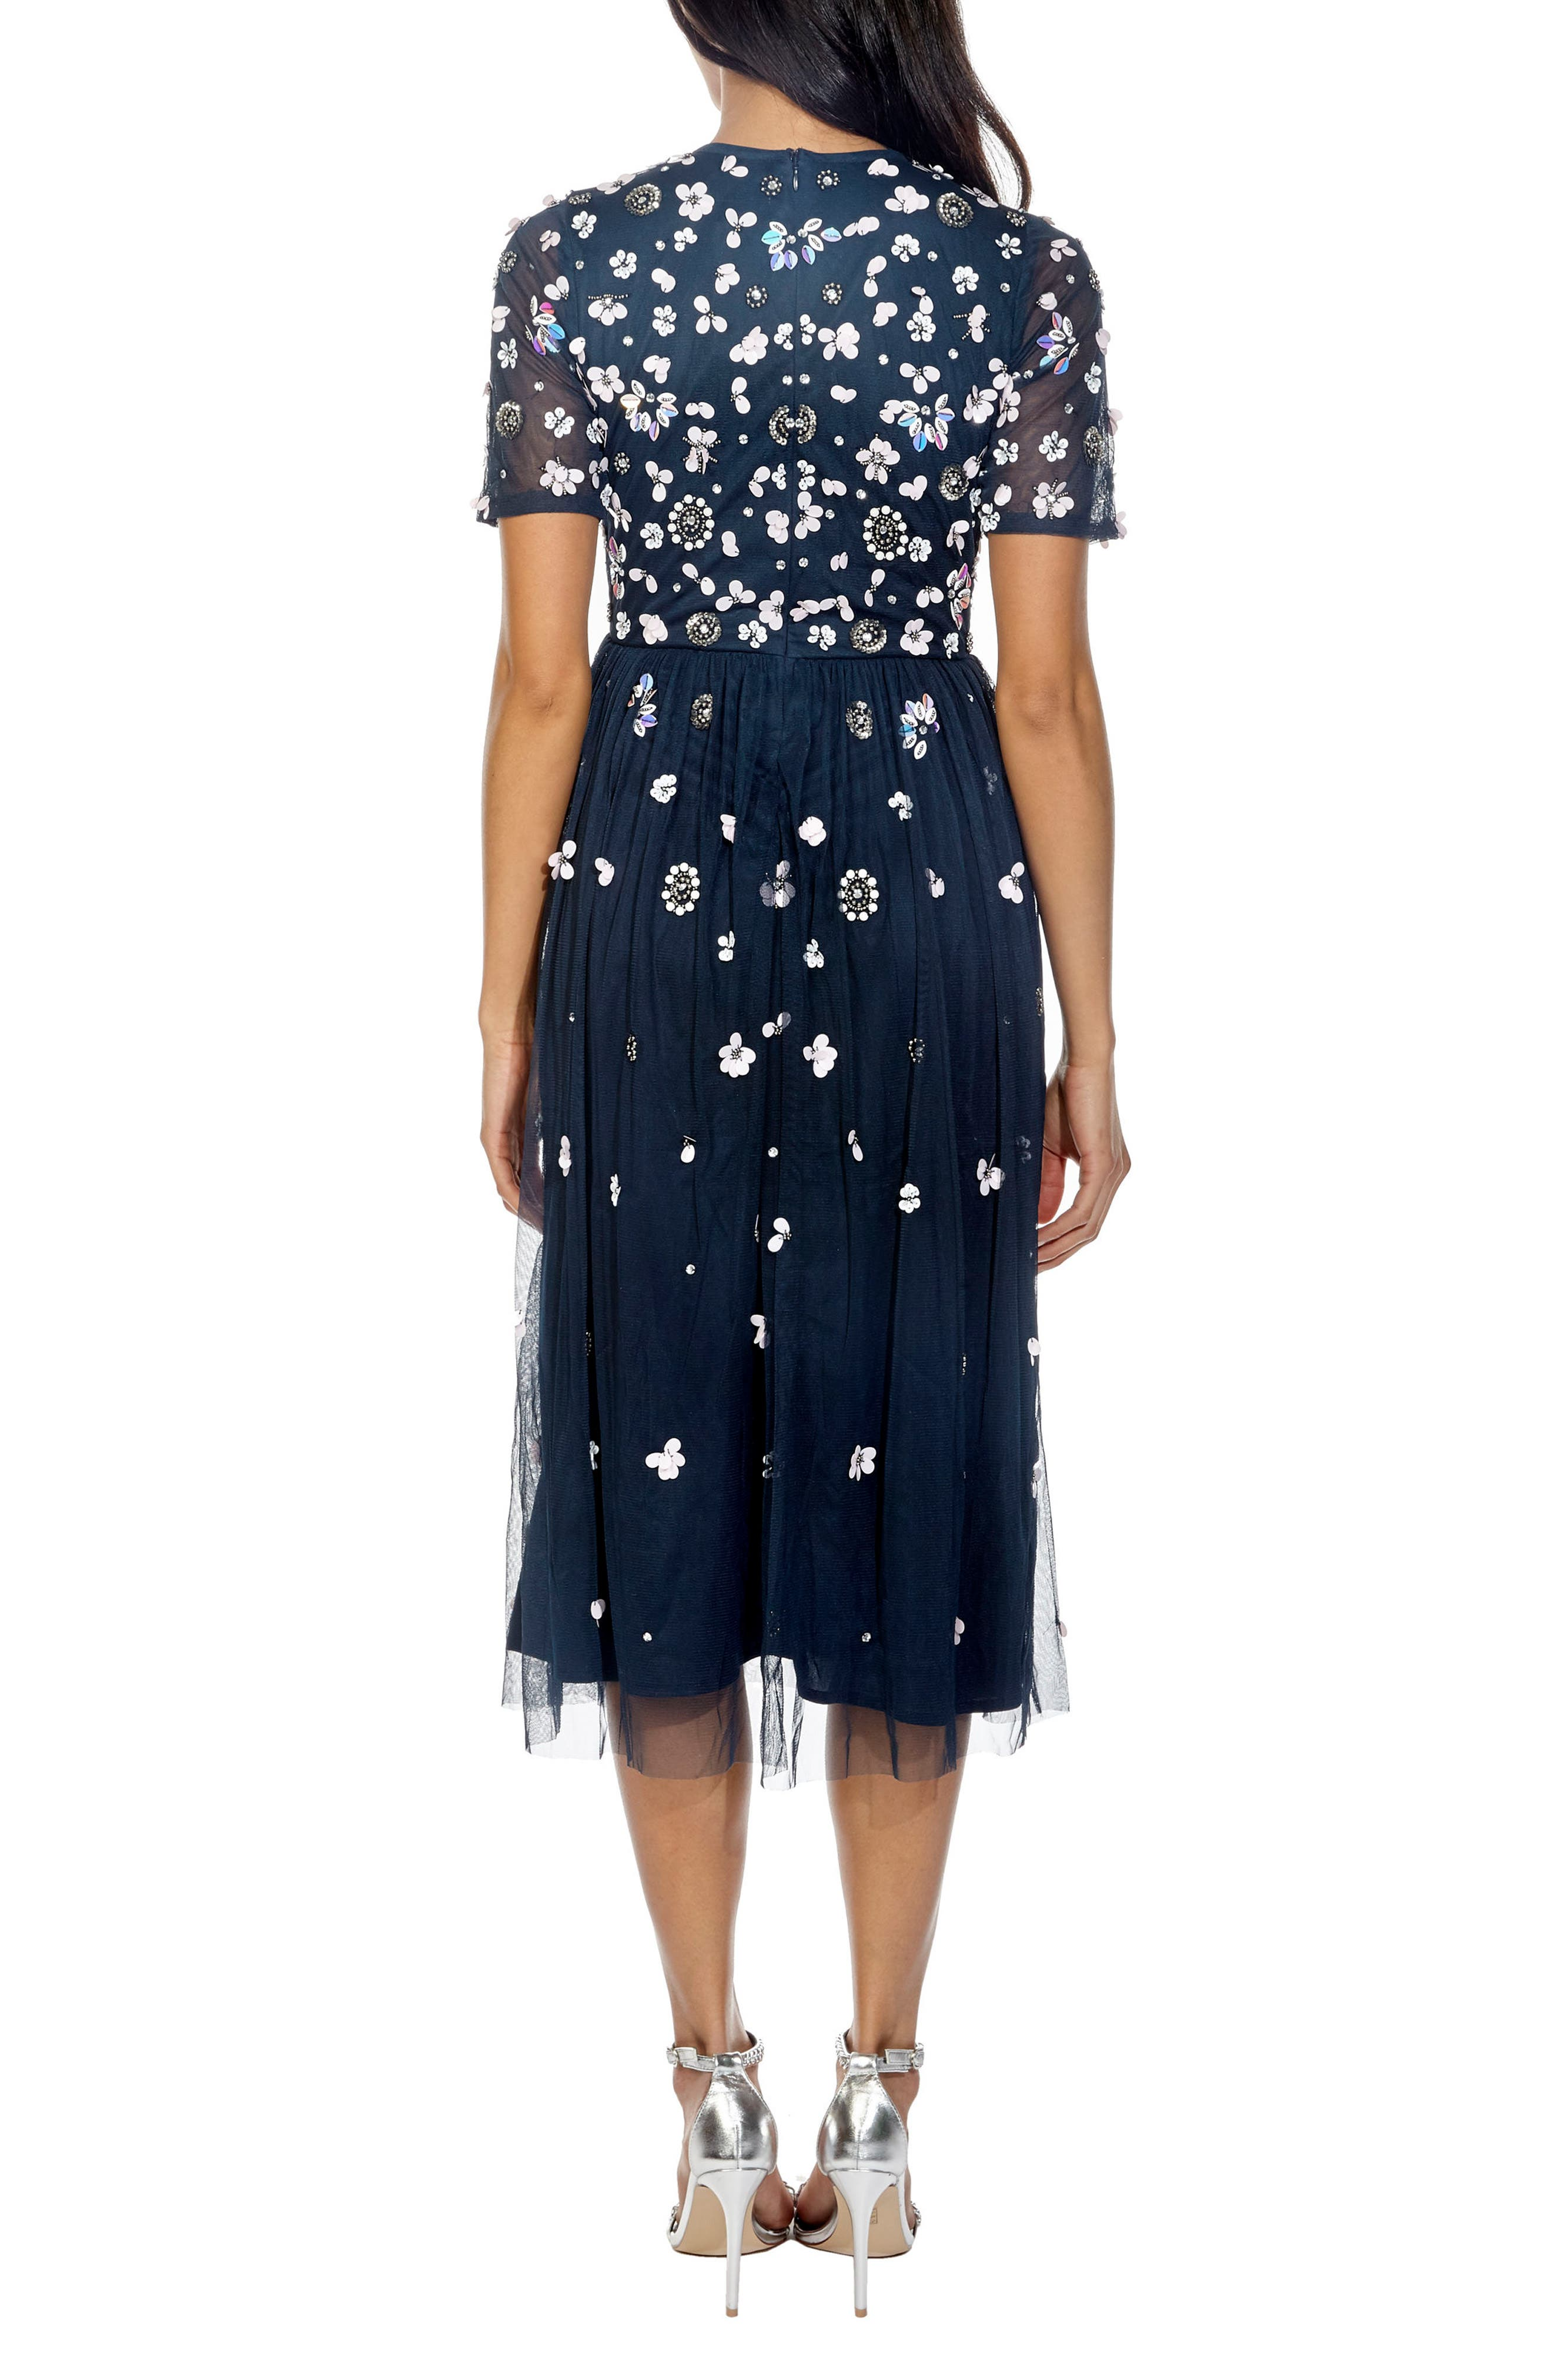 Baby Sequin Midi Dress,                             Alternate thumbnail 2, color,                             Navy